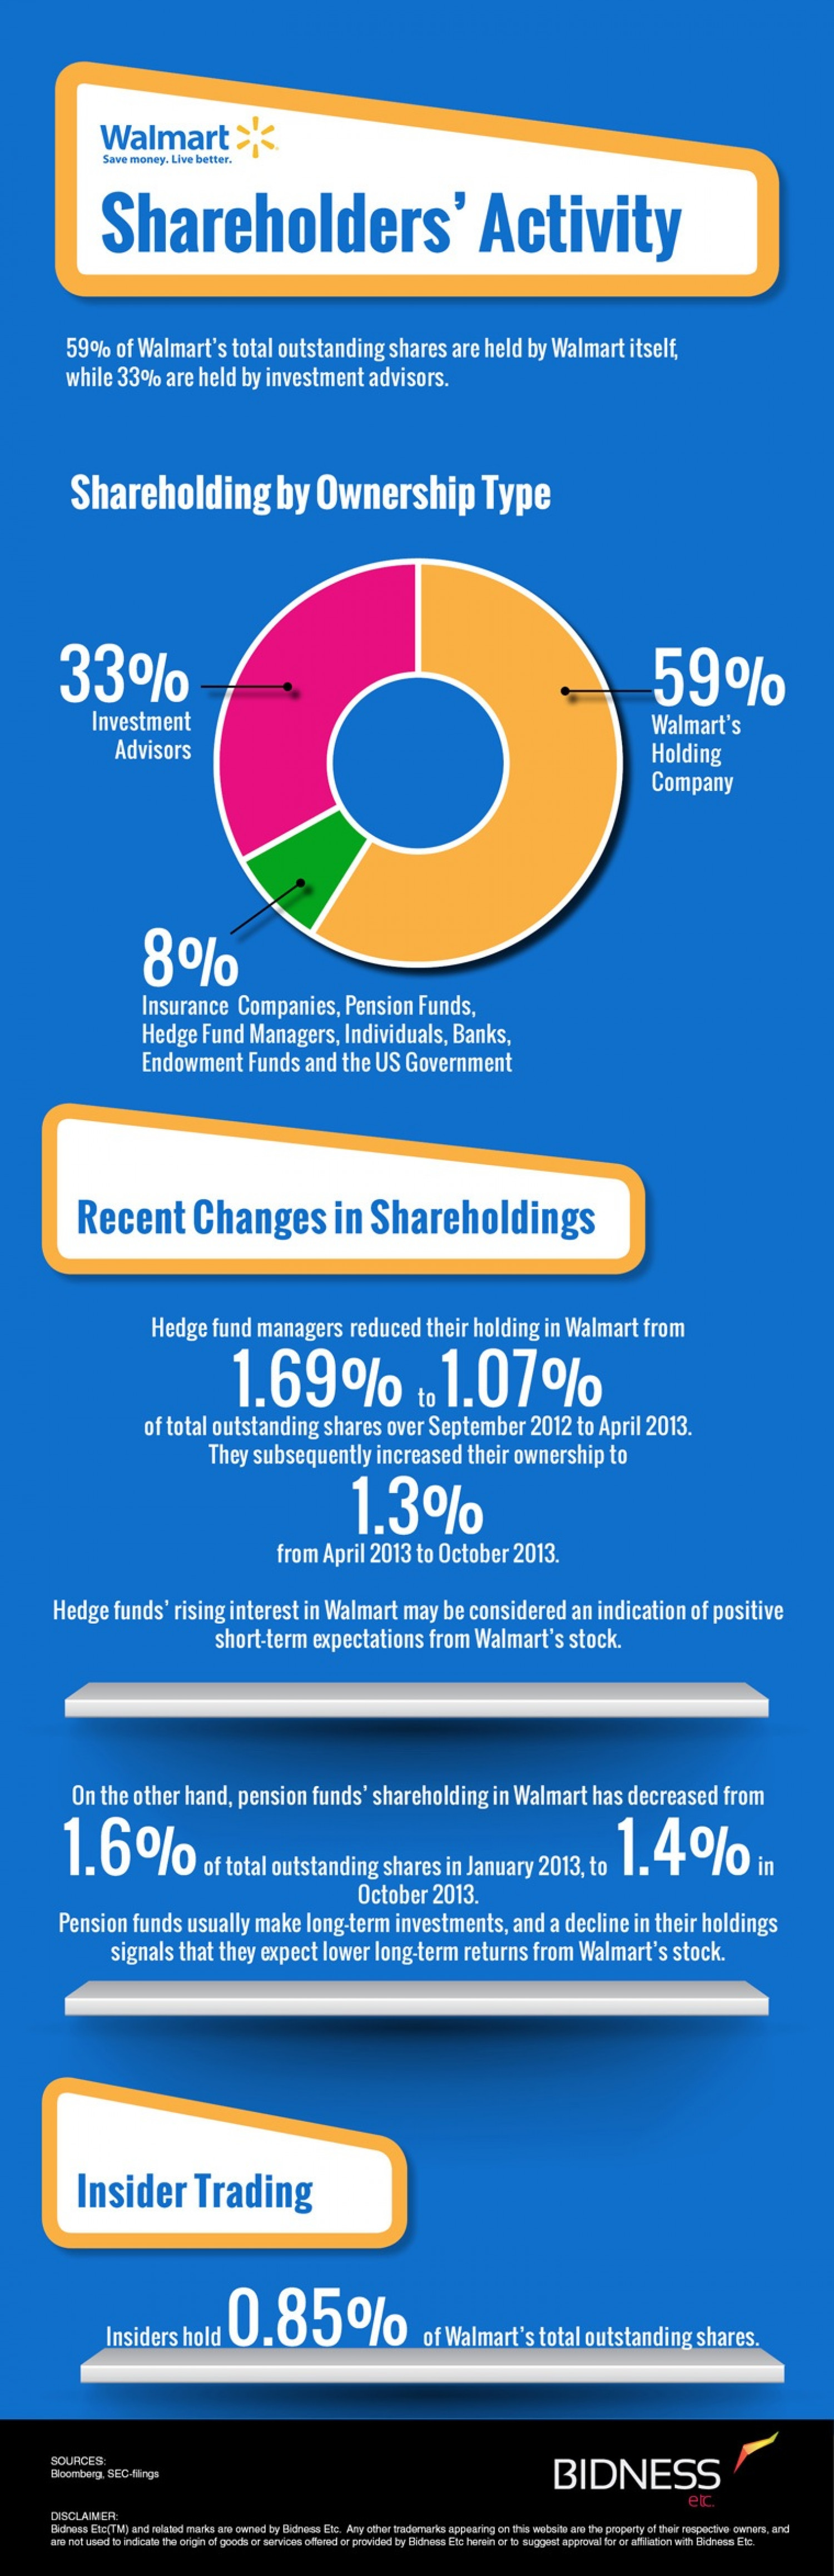 Walmart (WMT) Shareholder Activity Infographic